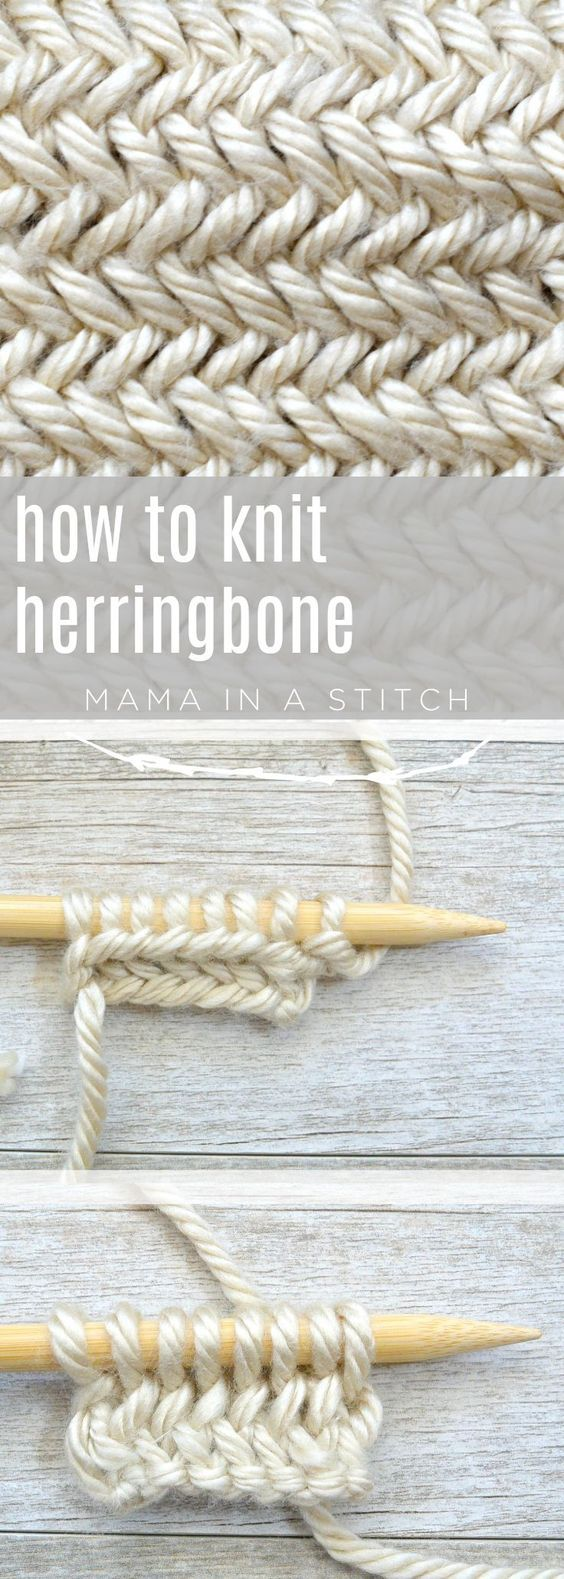 How To Knit the Horizontal Herringbone Stitch #knittingideas